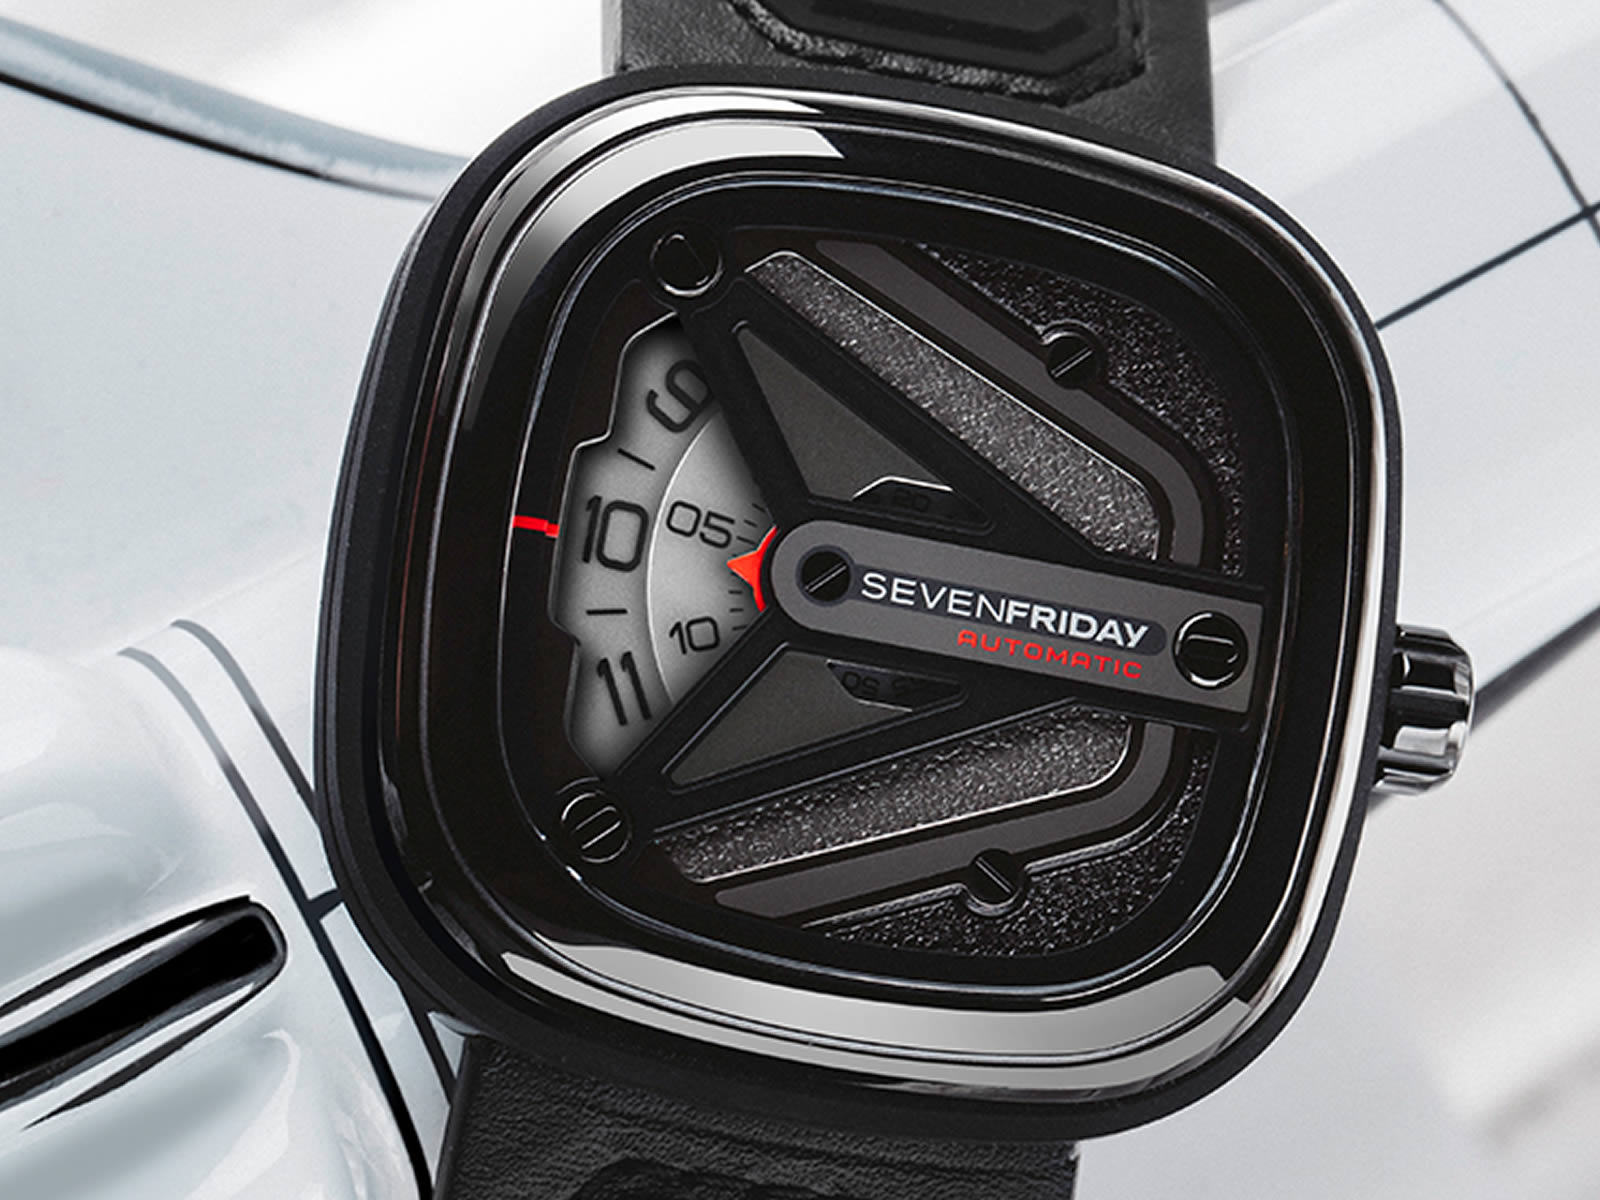 sevenfriday-m3-01-spaceship-edition-8-.jpg